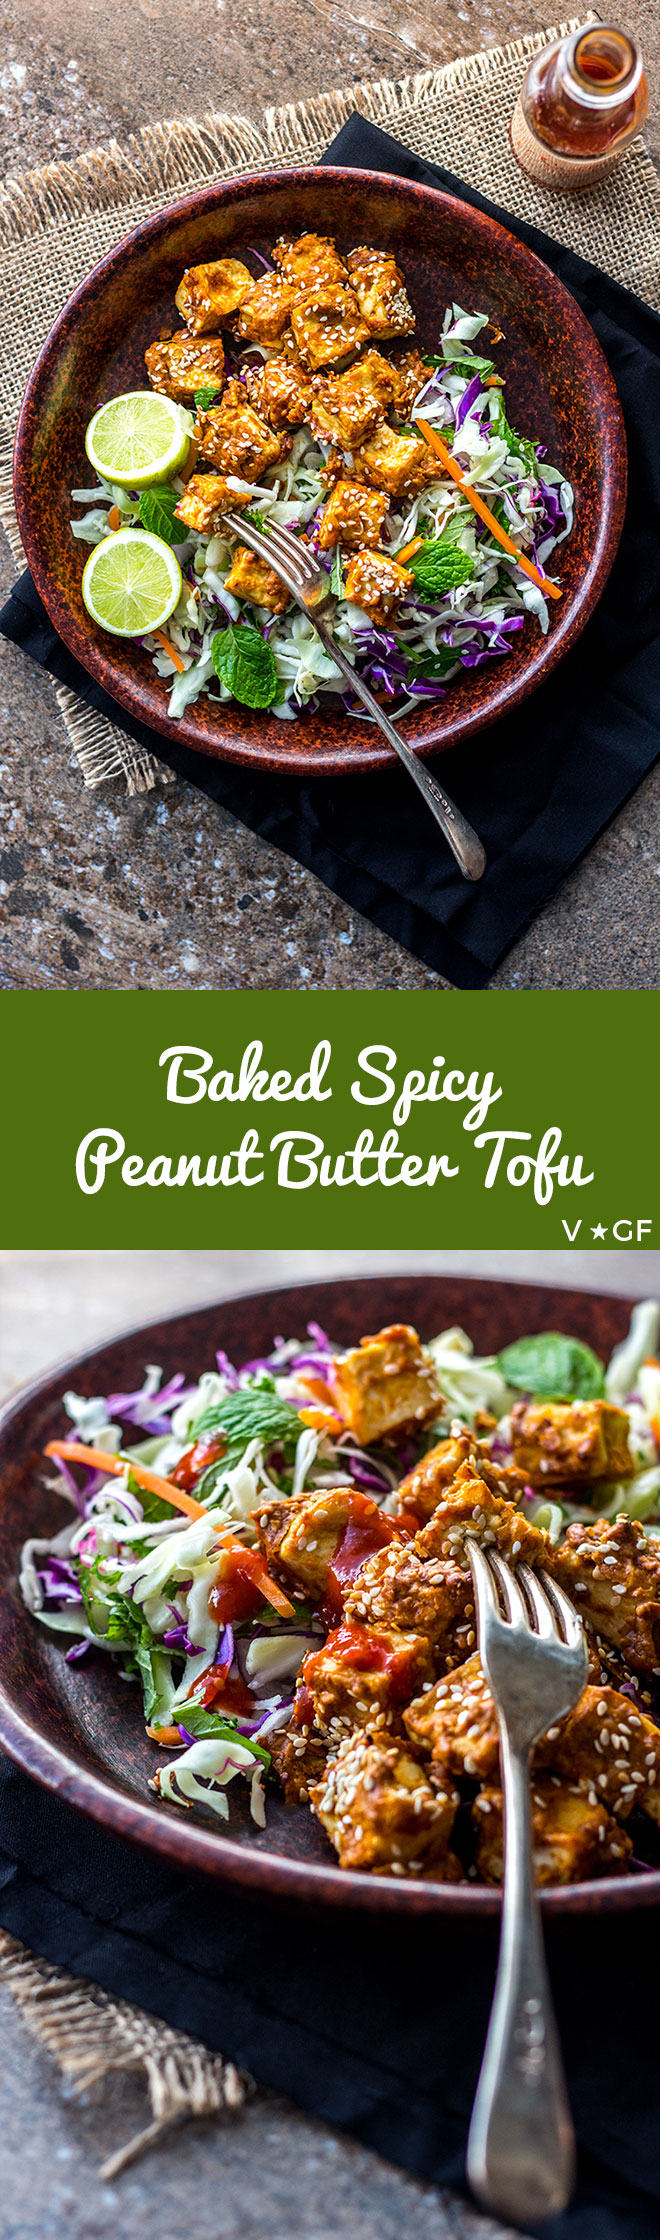 Oven-baked cubes of tofu coated with spicy peanut butter and sesame seeds are tasty protein bombs to add to salads (vegan and gluten free).